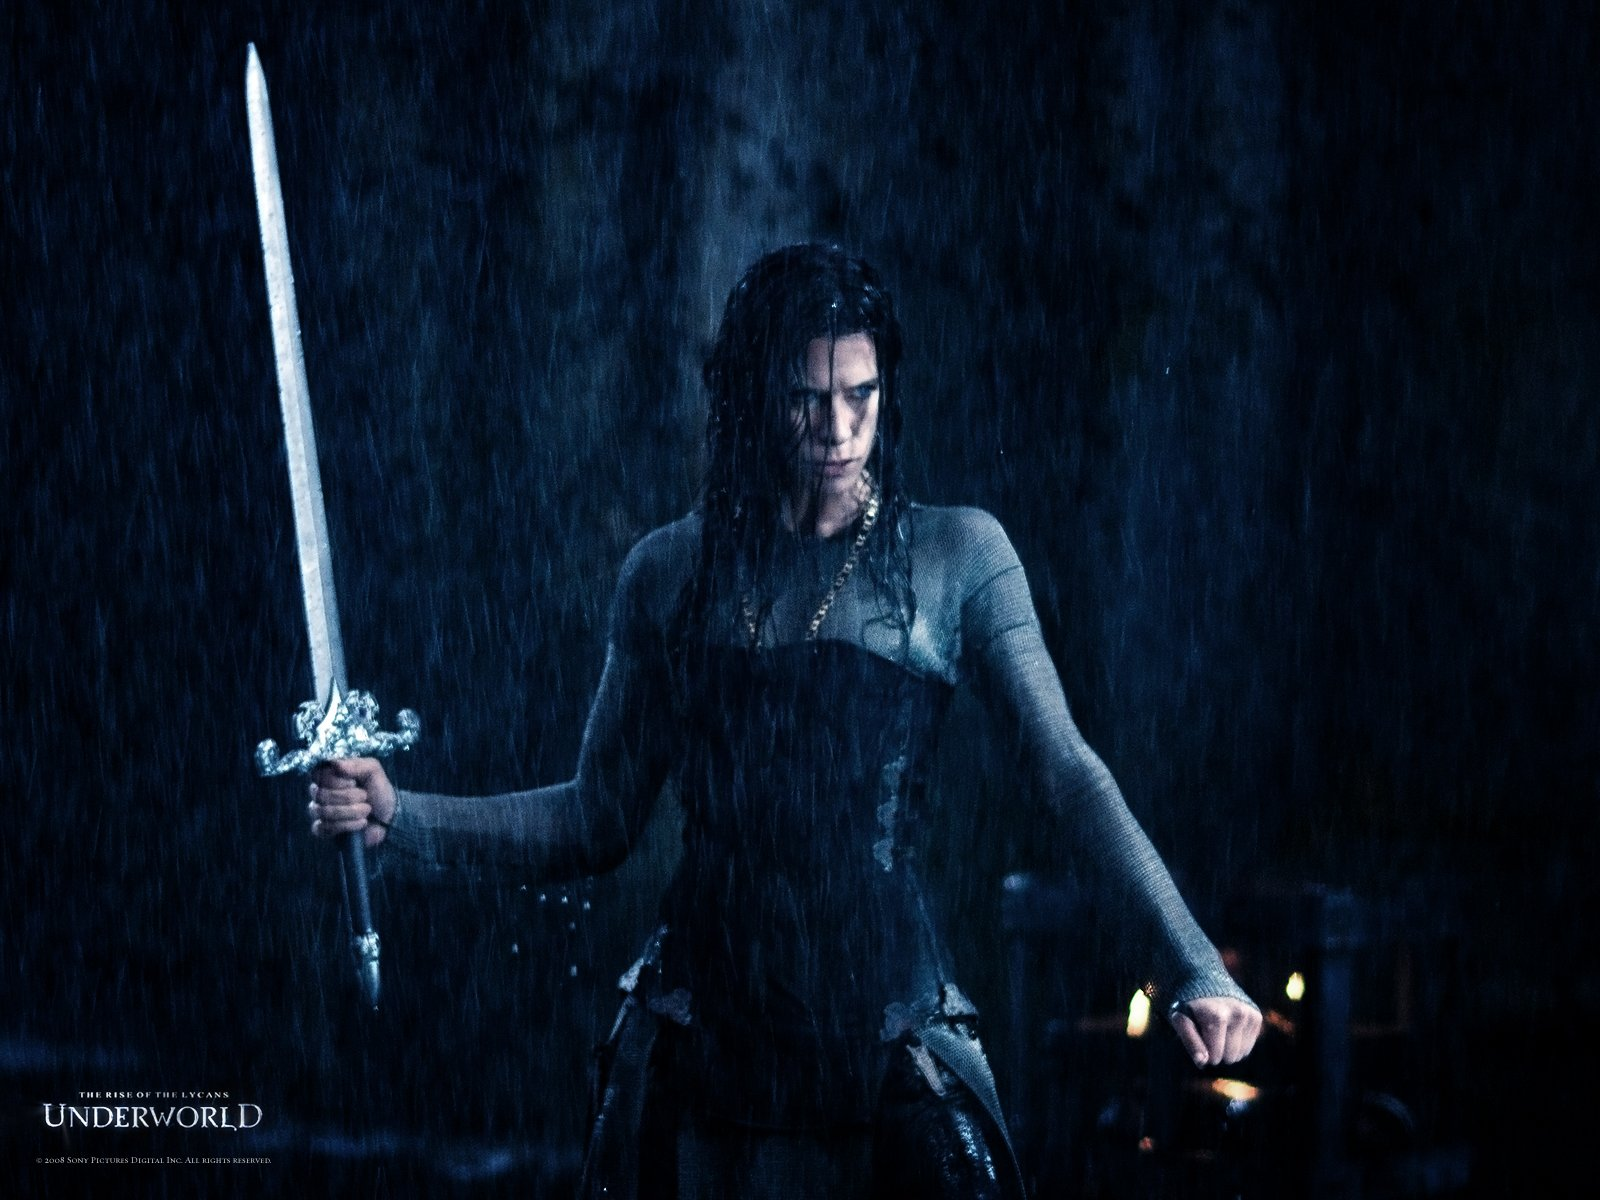 Underworld Rise of the Lycans Wallpapers 1600 x 1200 1600x1200